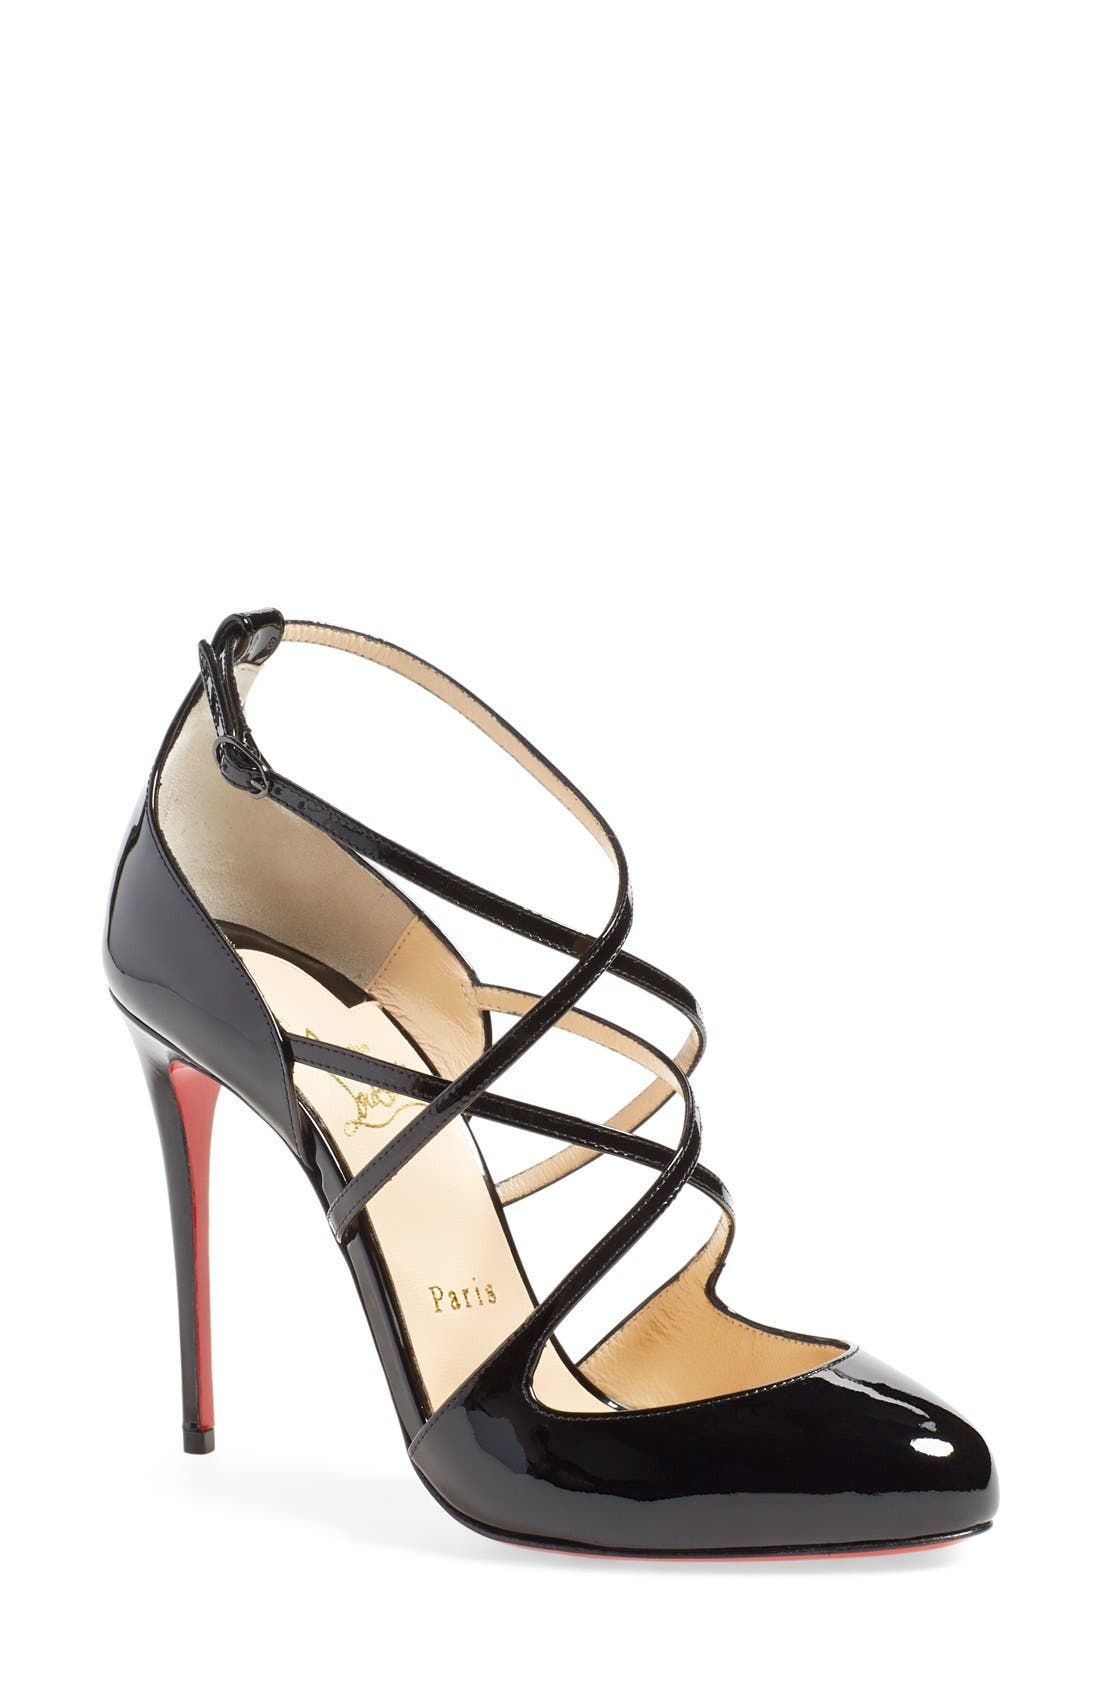 Alternate Image 1 Selected - Christian Louboutin 'Soustelissimo' Ankle Strap Pump